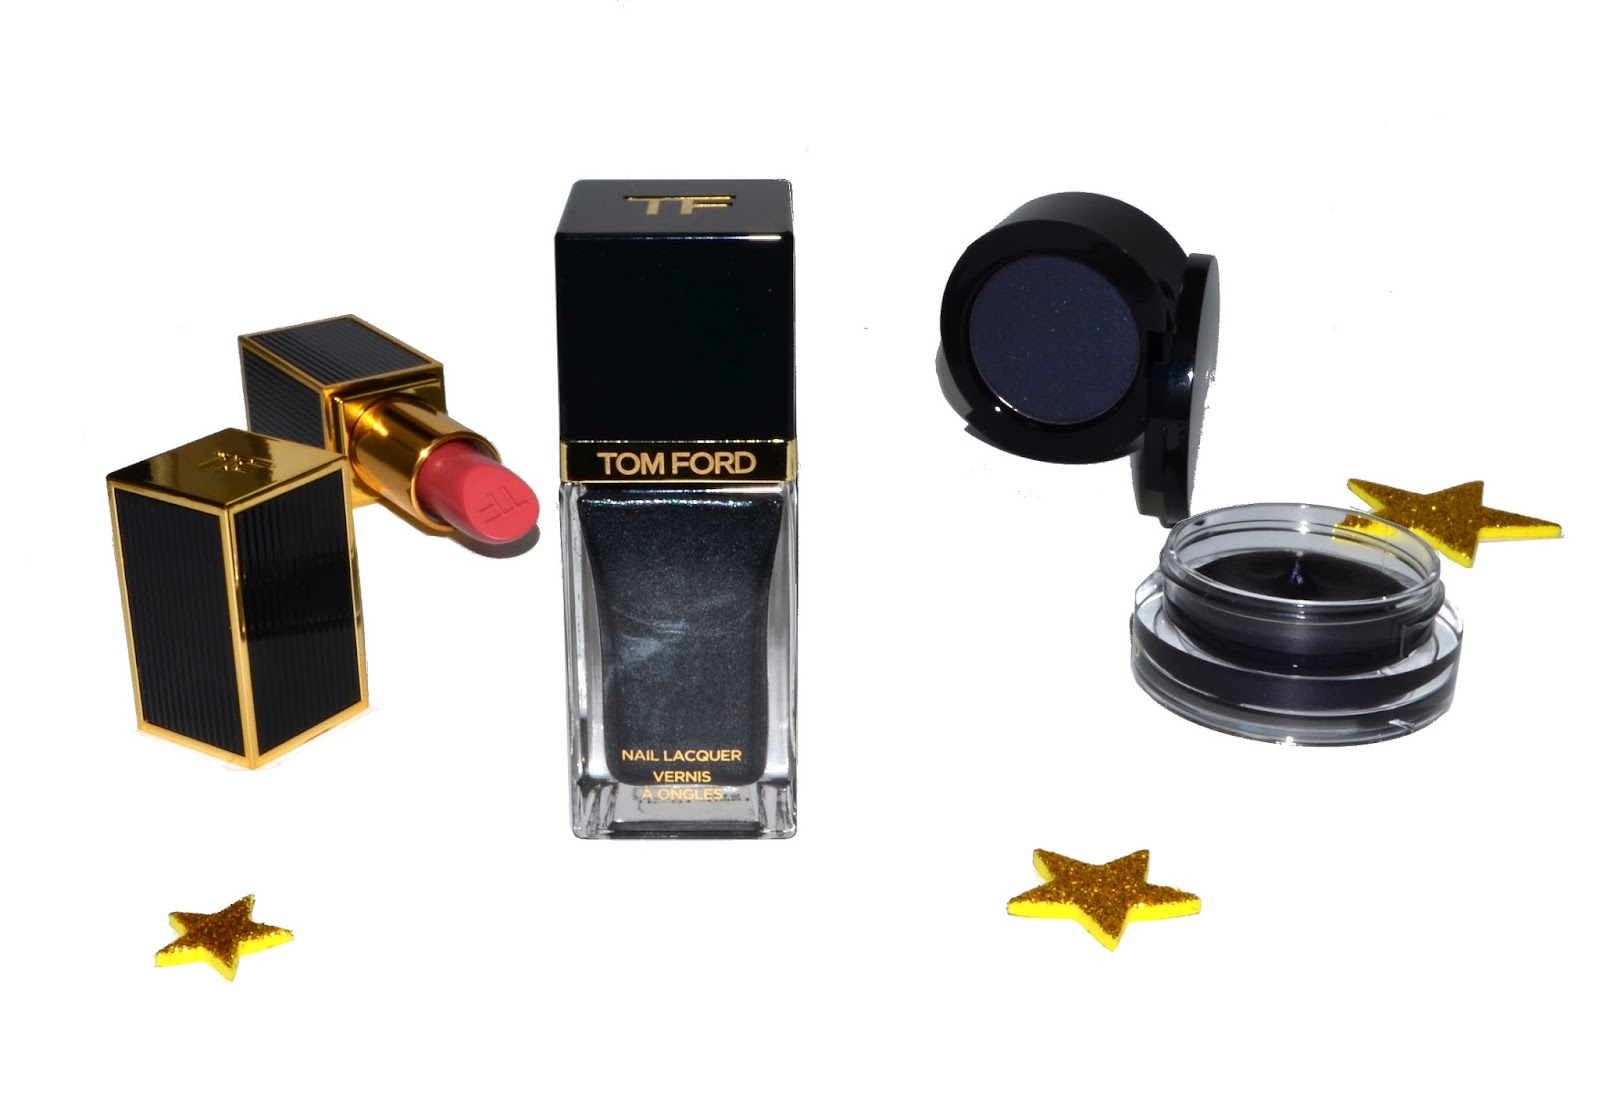 Discussion on this topic: Tom Ford Noir Holiday 2015 Makeup Collection, tom-ford-noir-holiday-2015-makeup-collection/